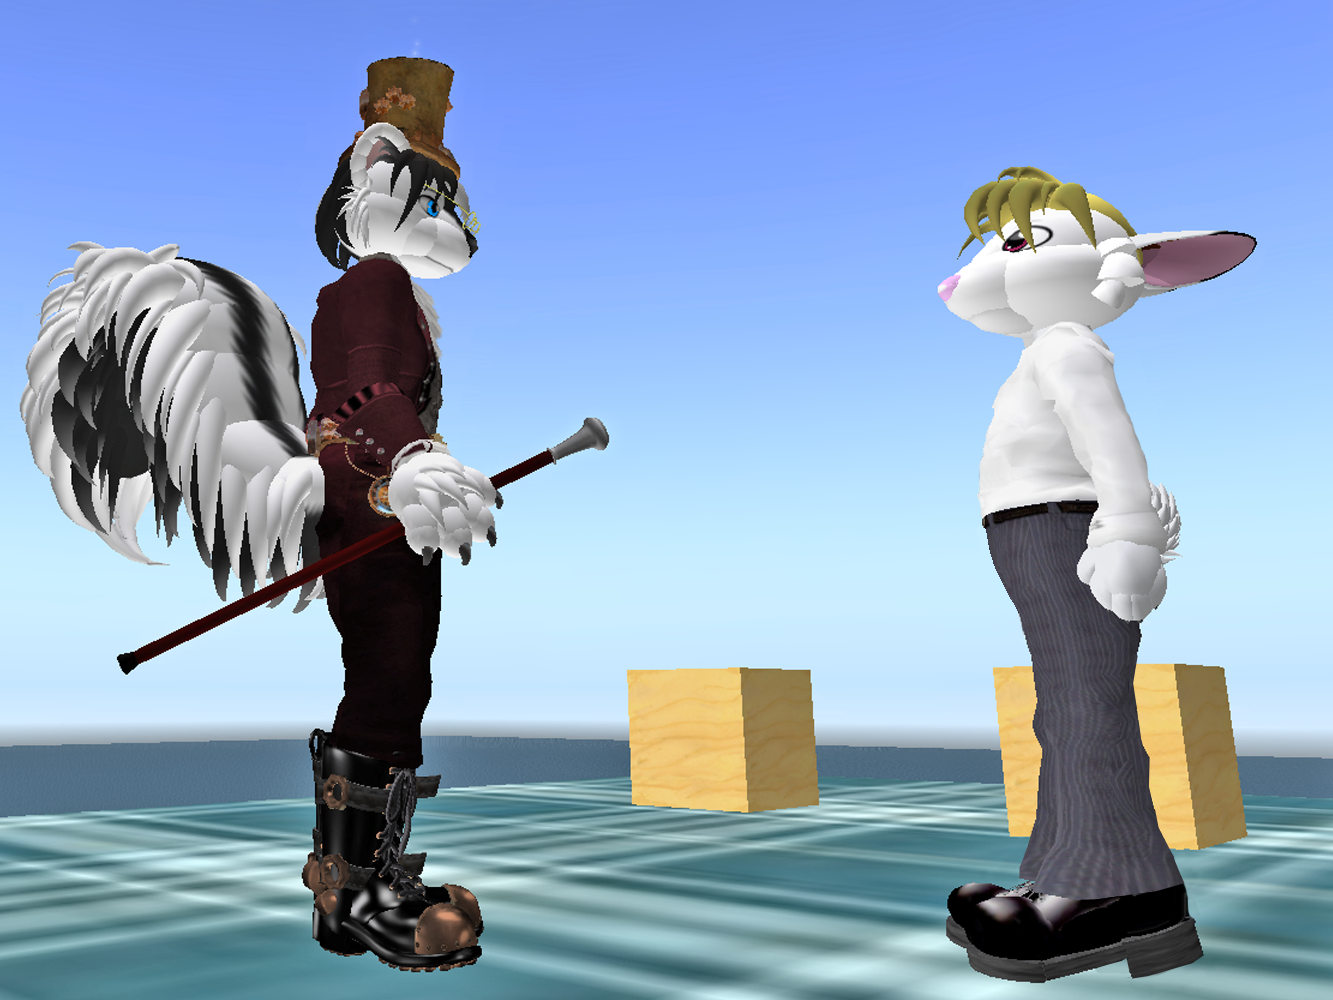 Roger at second life #4